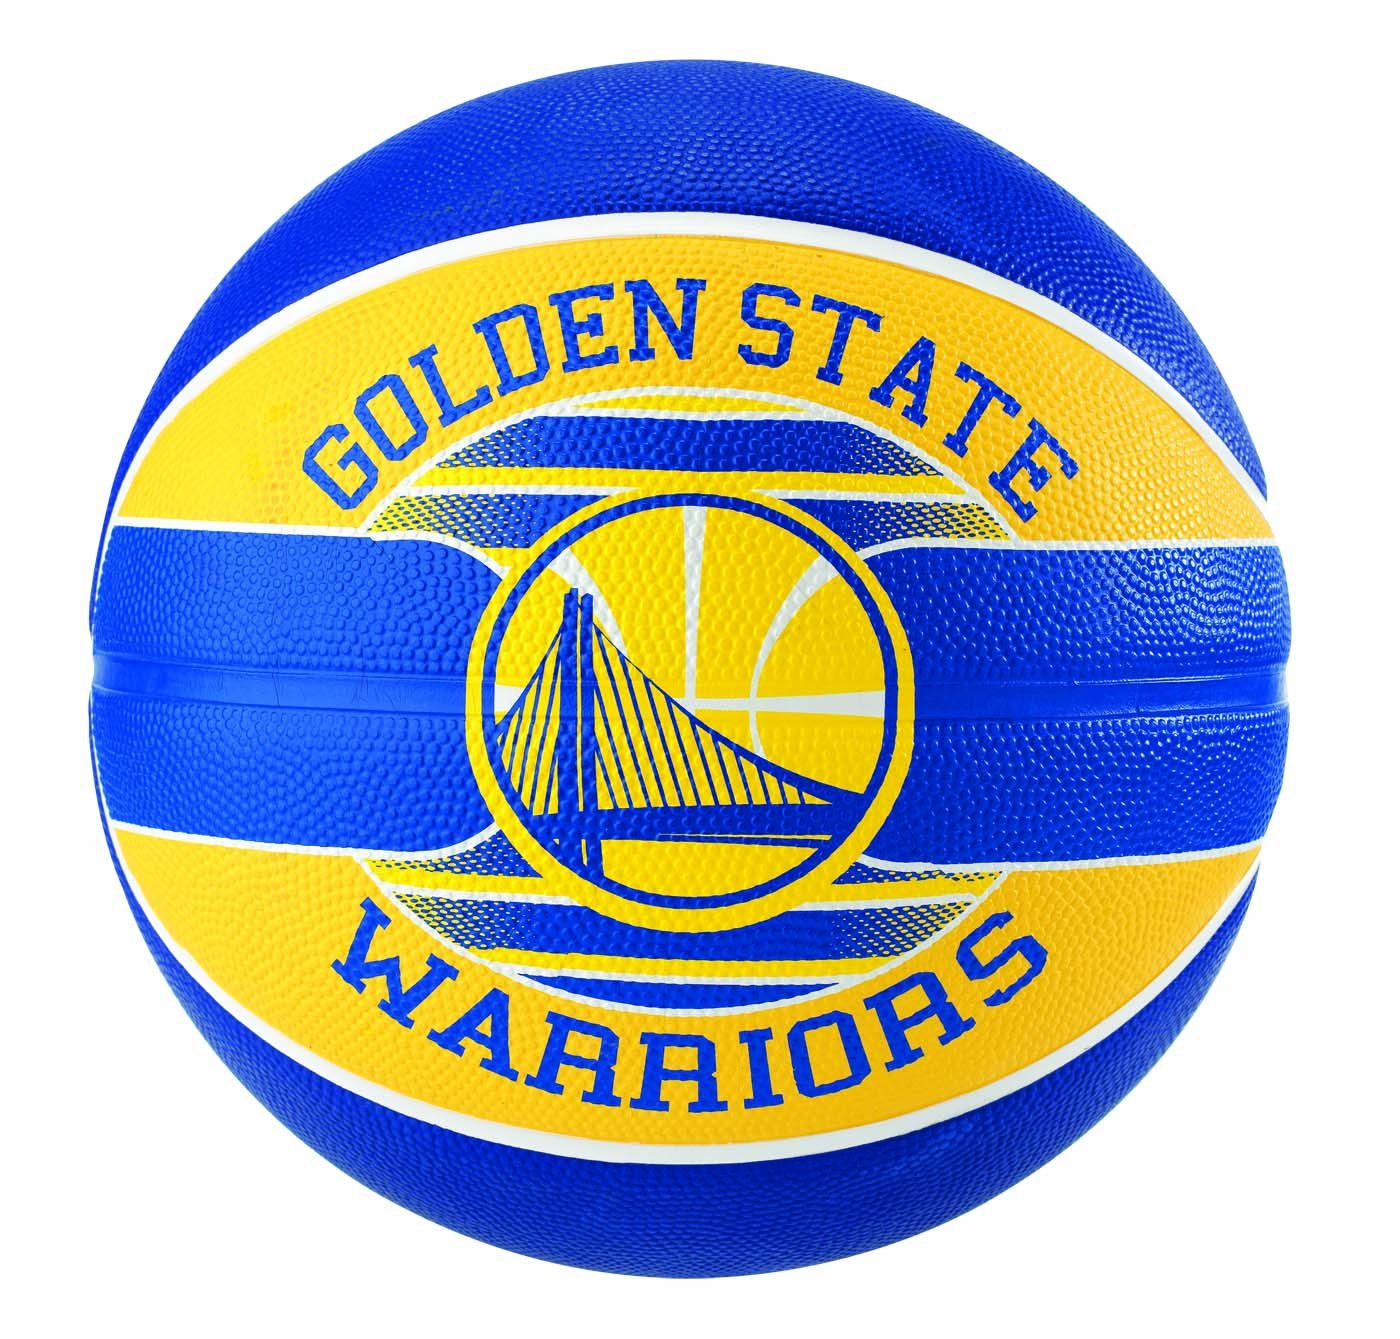 Spalding NBA Team Golden State Ball Basketball SPAPO|#Spalding